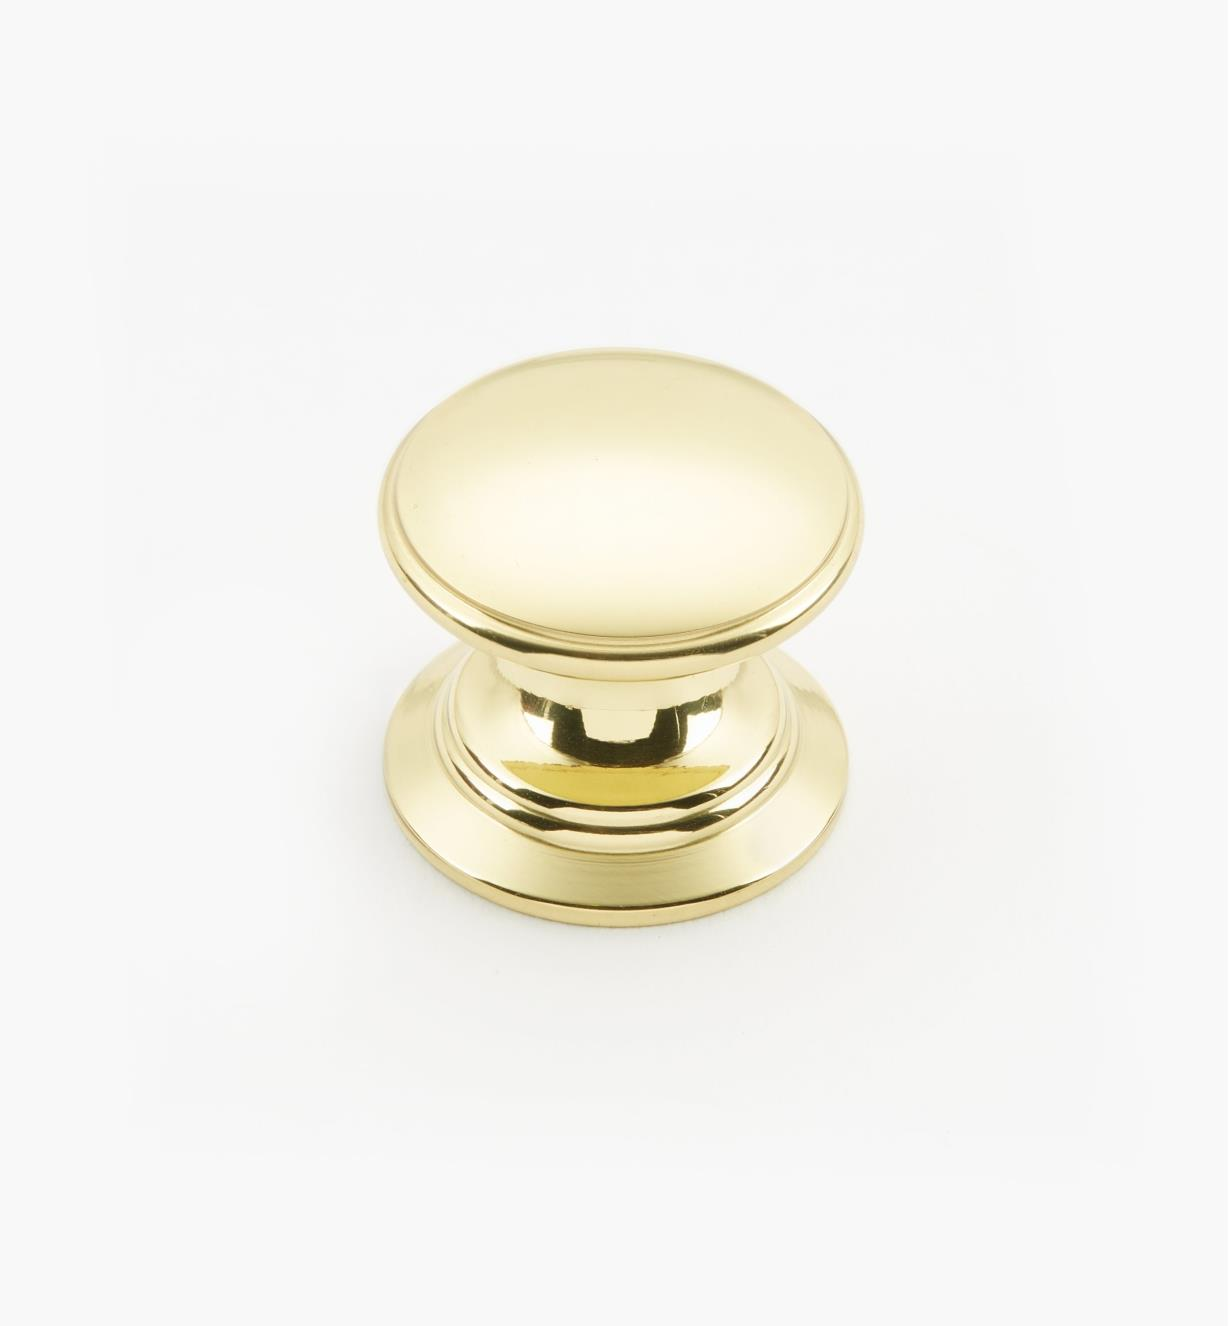 "02W1408 - Polished Brass Suite - 1"" x 7/8"" Knob"